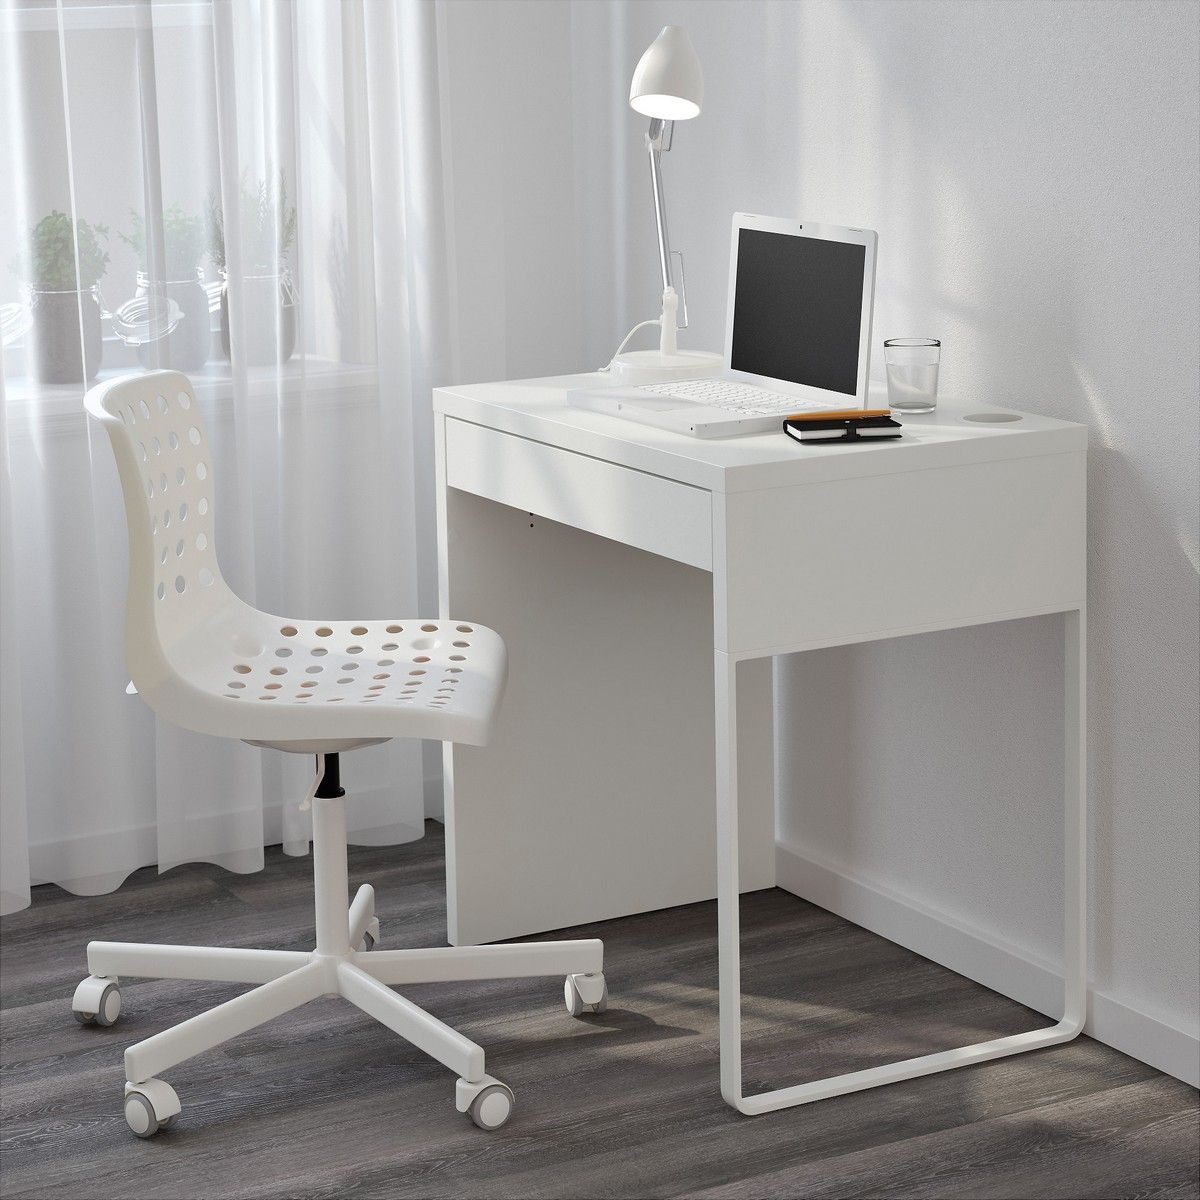 Narrow Computer Desk Ikea MICKE White for Small Space | Minimalist ...